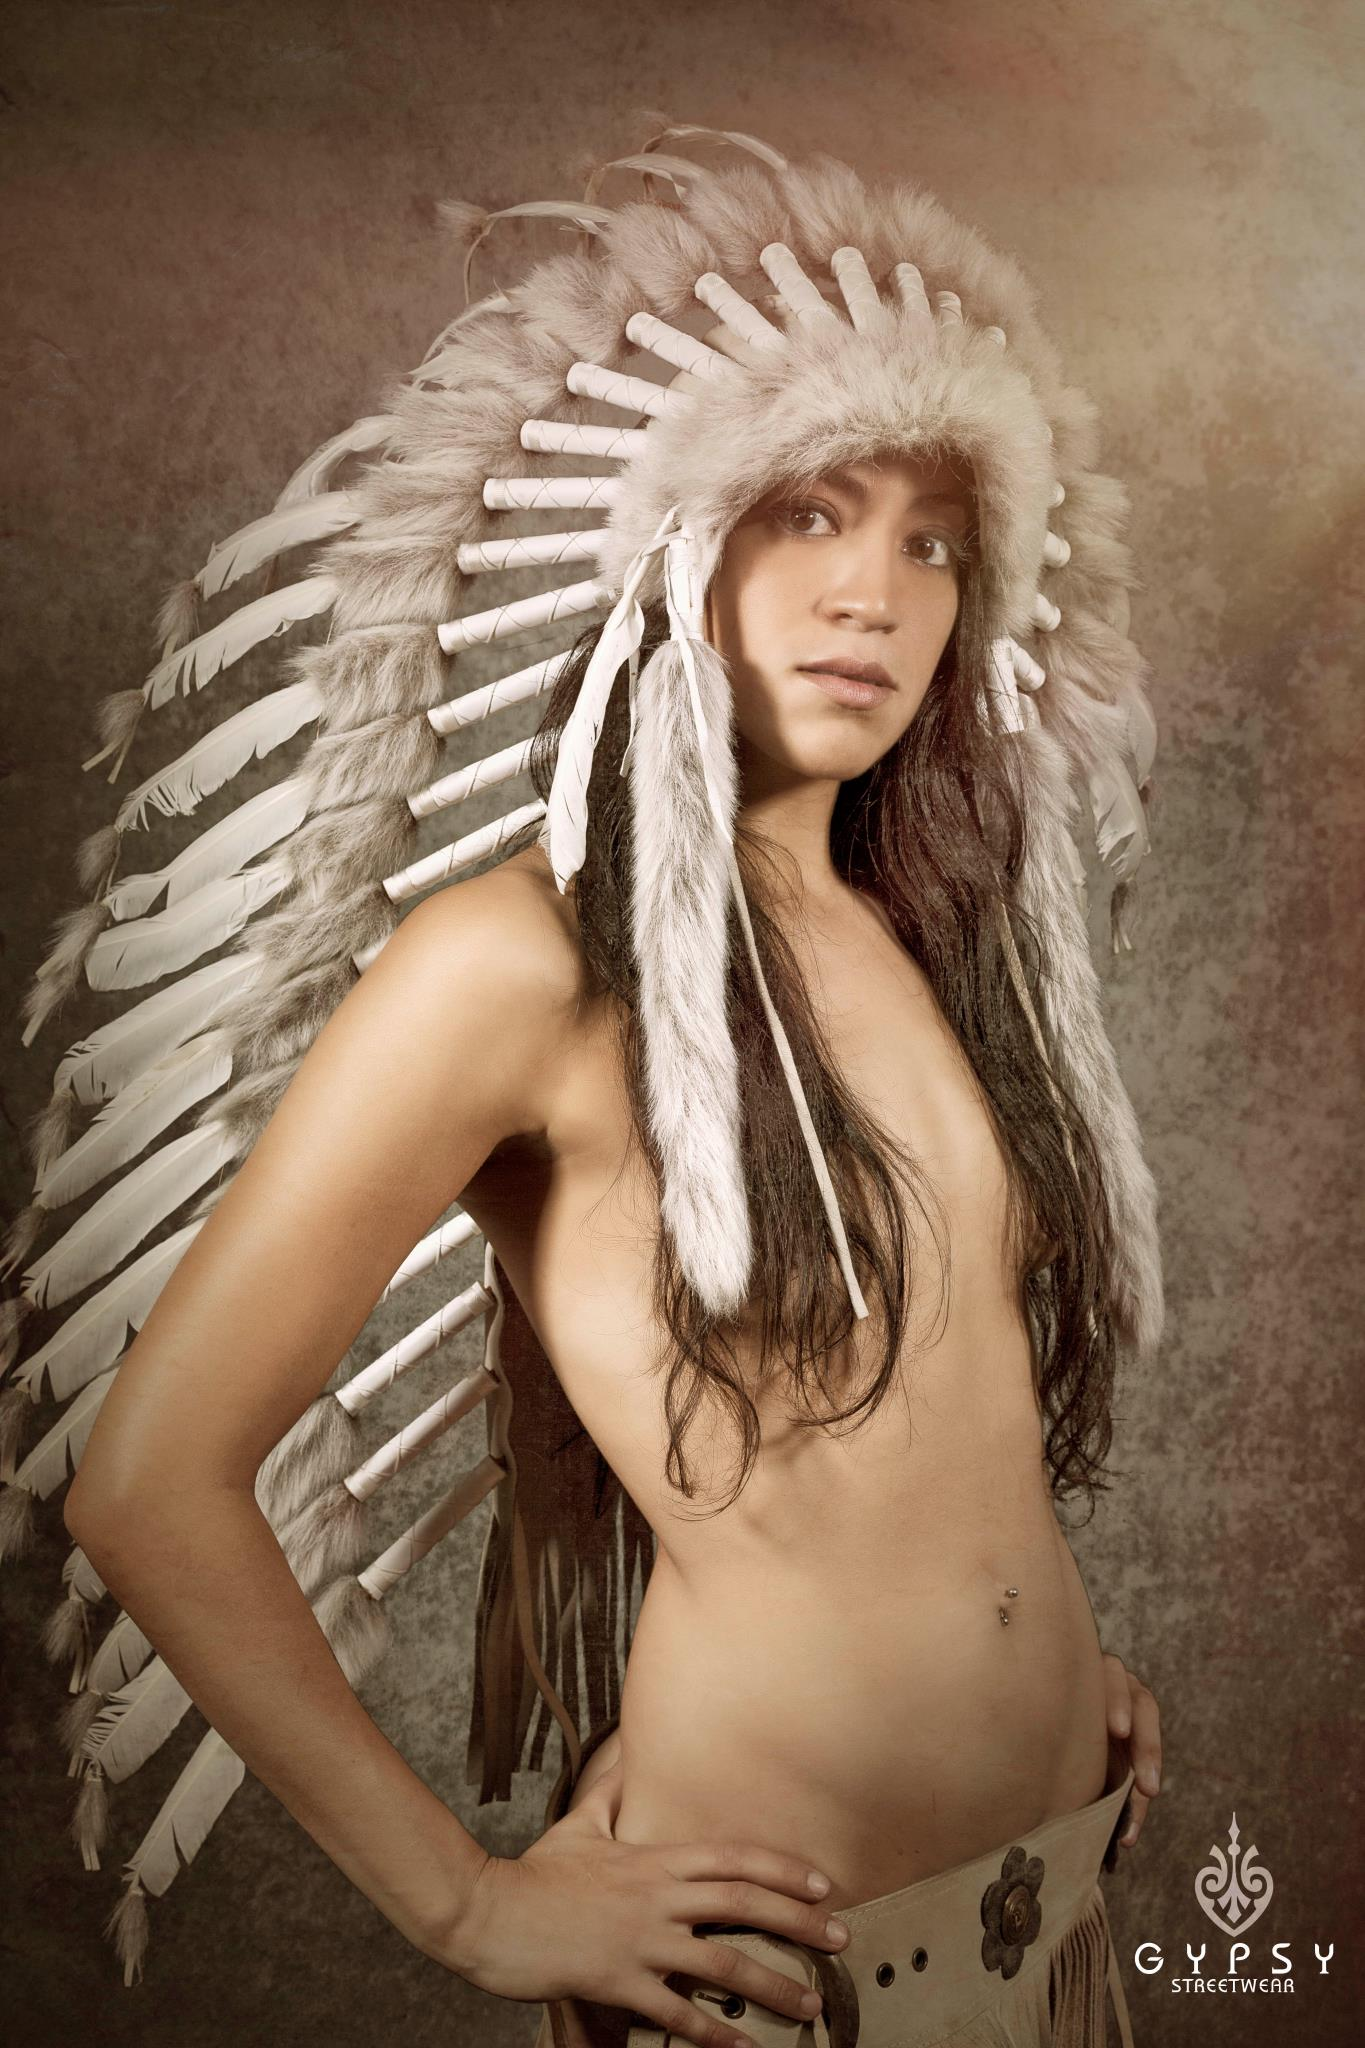 Fat native american naked 13